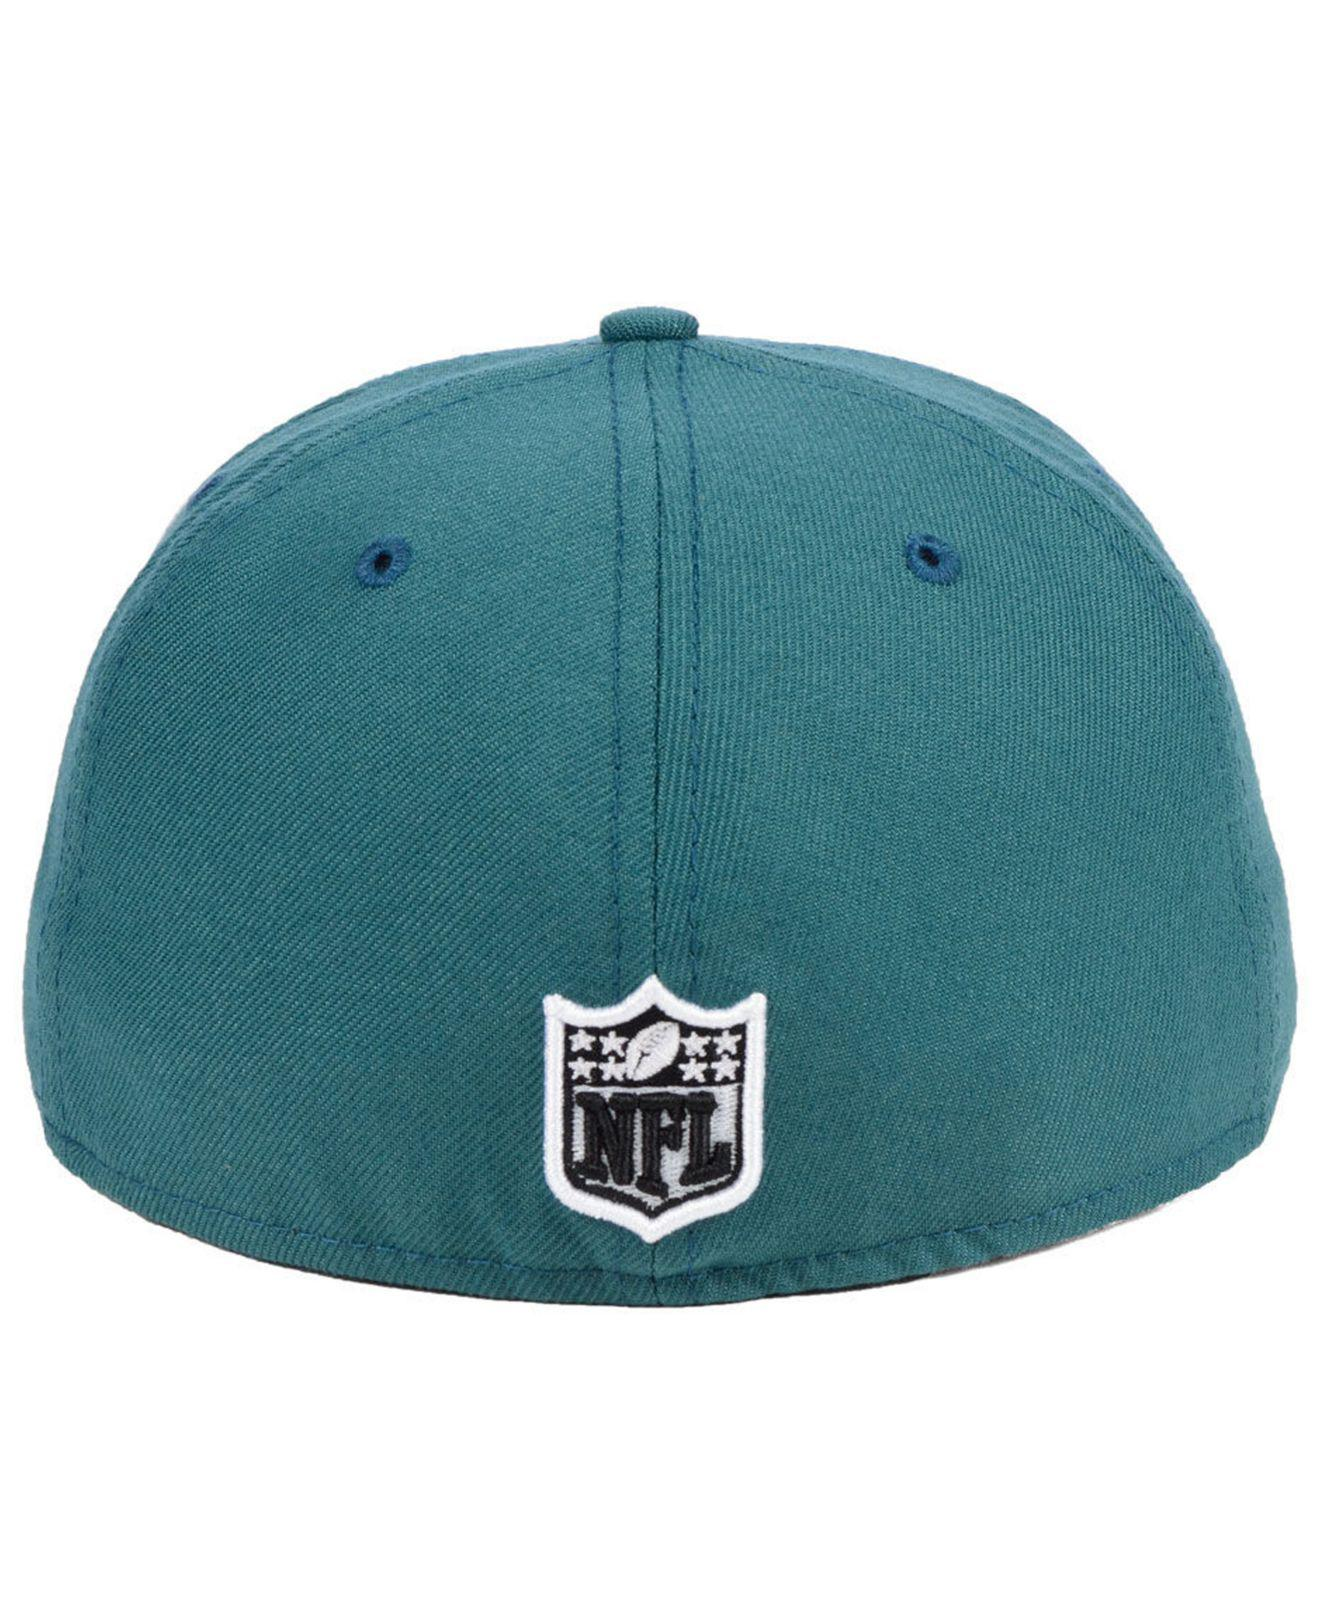 86df0a53473 Lyst - Ktz Philadelphia Eagles Team Basic 59fifty Fitted Cap in Green for  Men